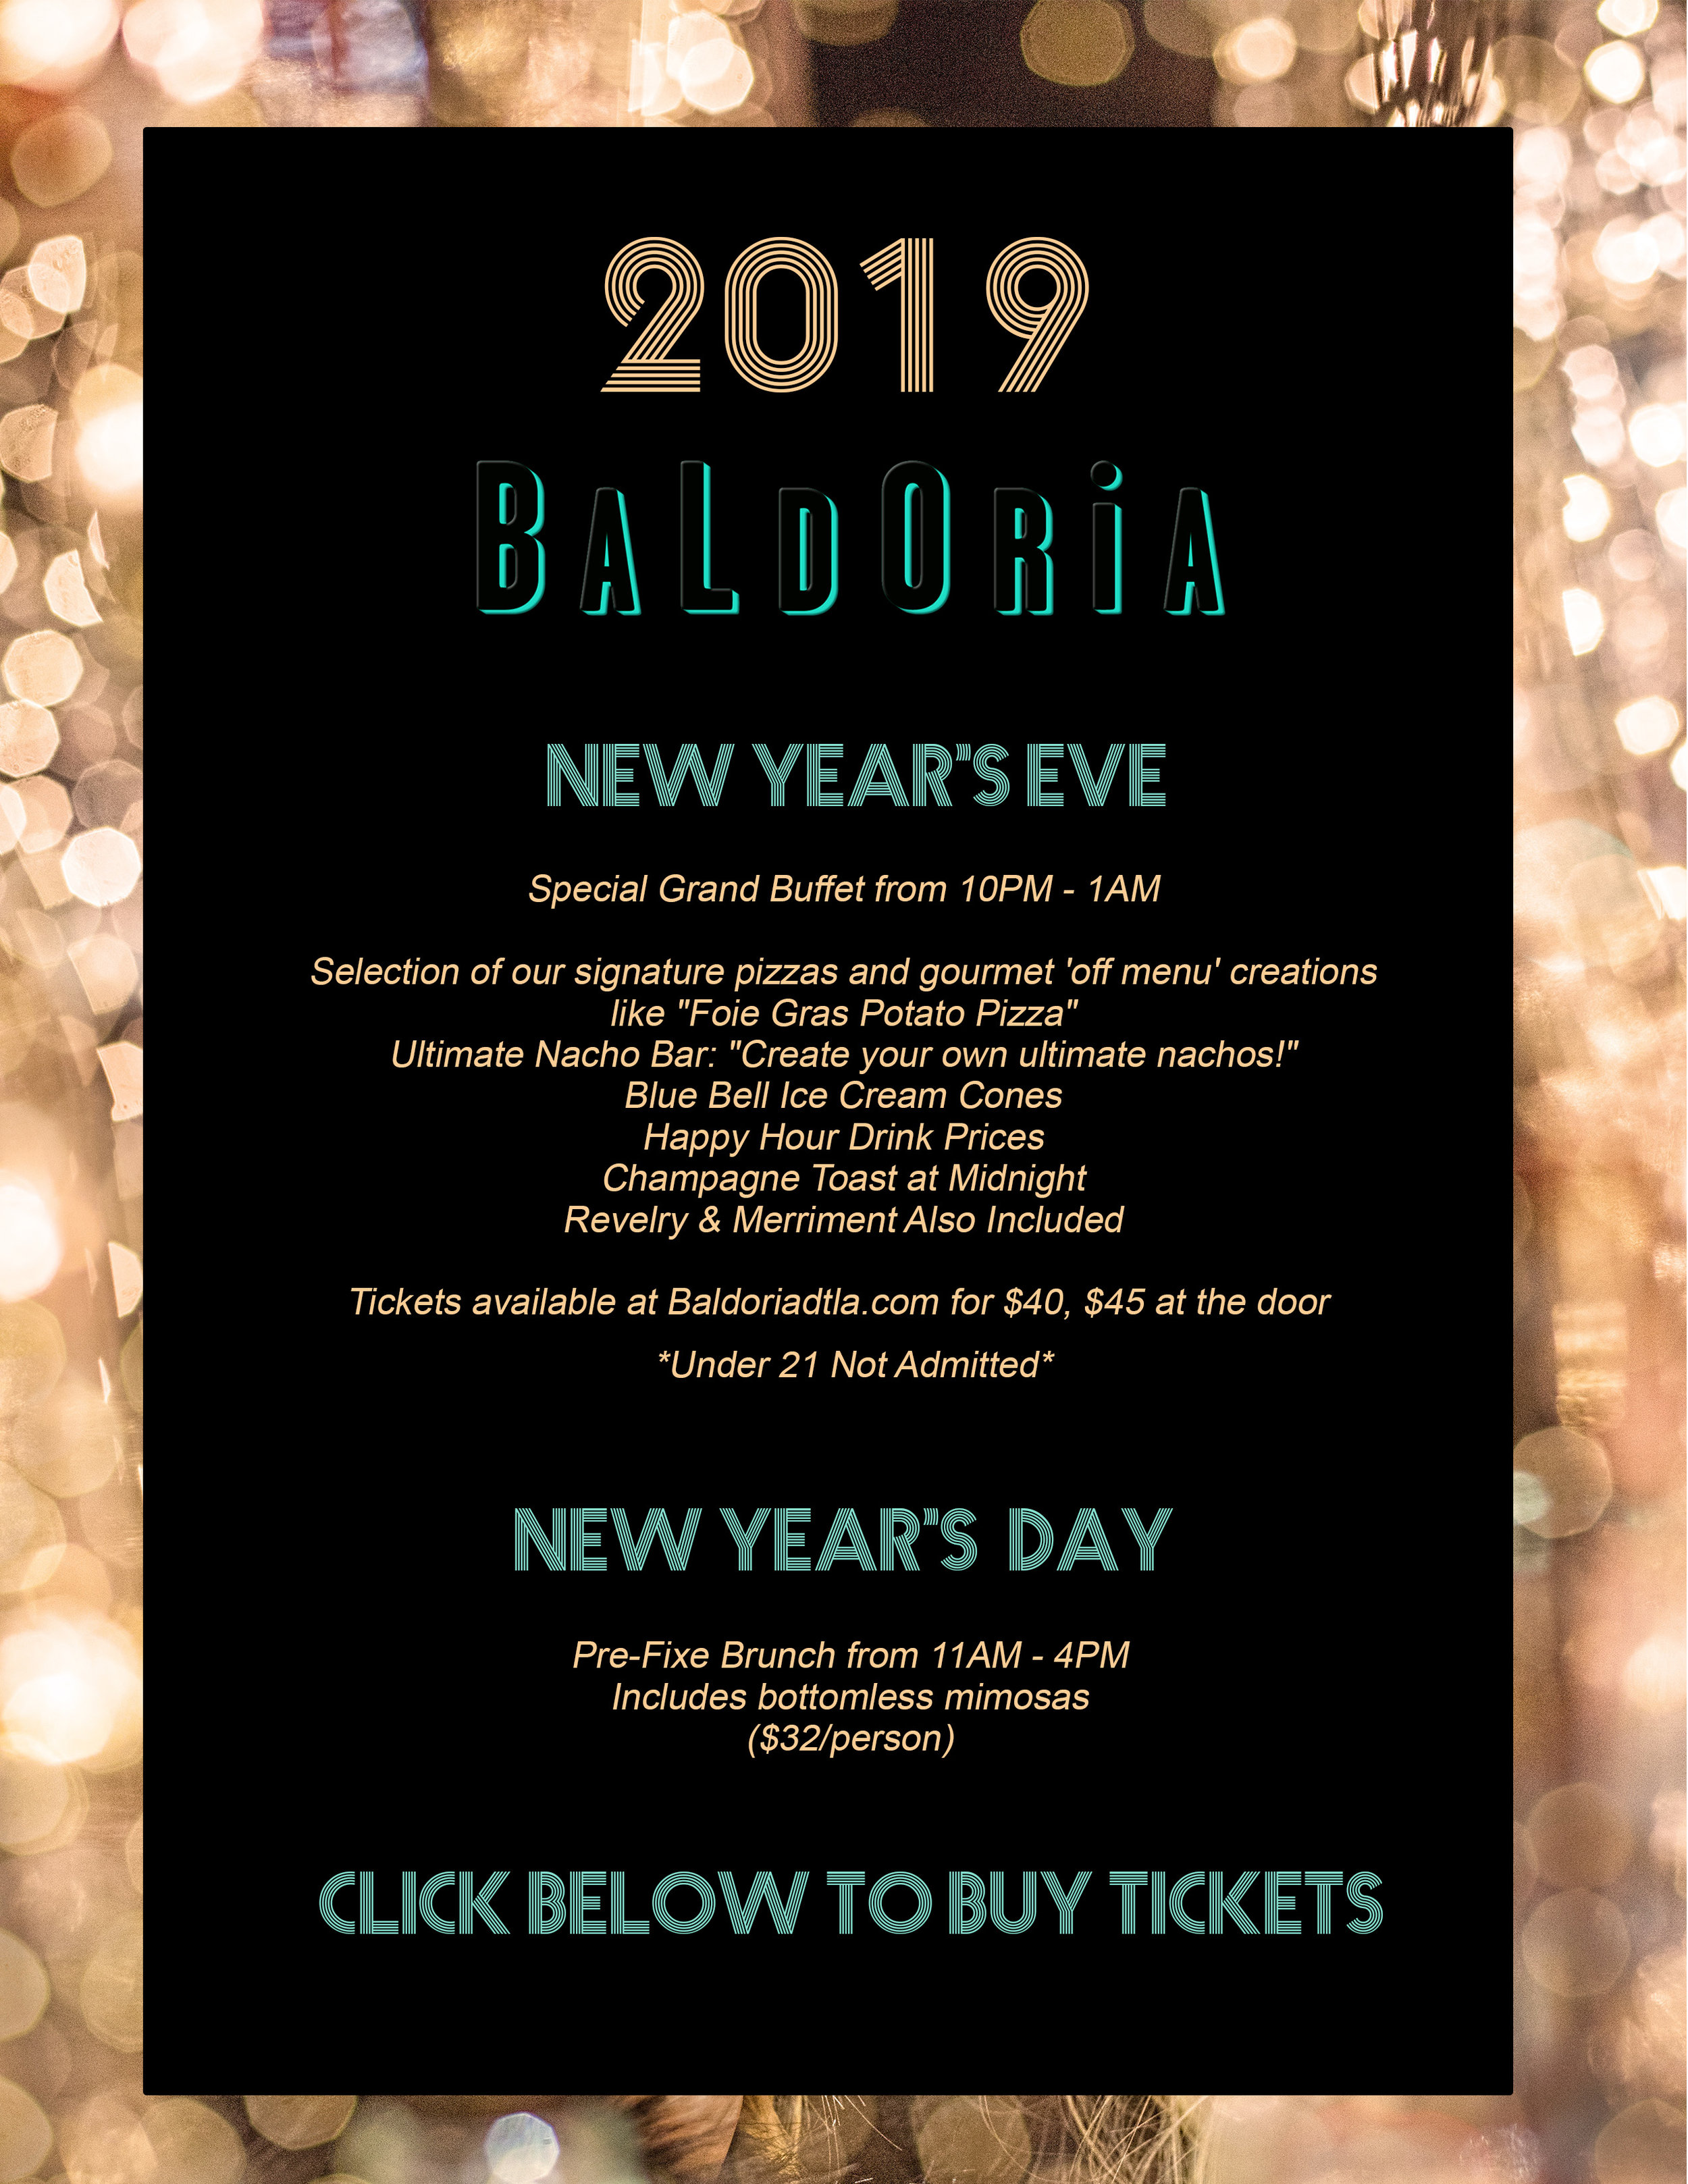 Baldoria New Years Poster_web.jpg